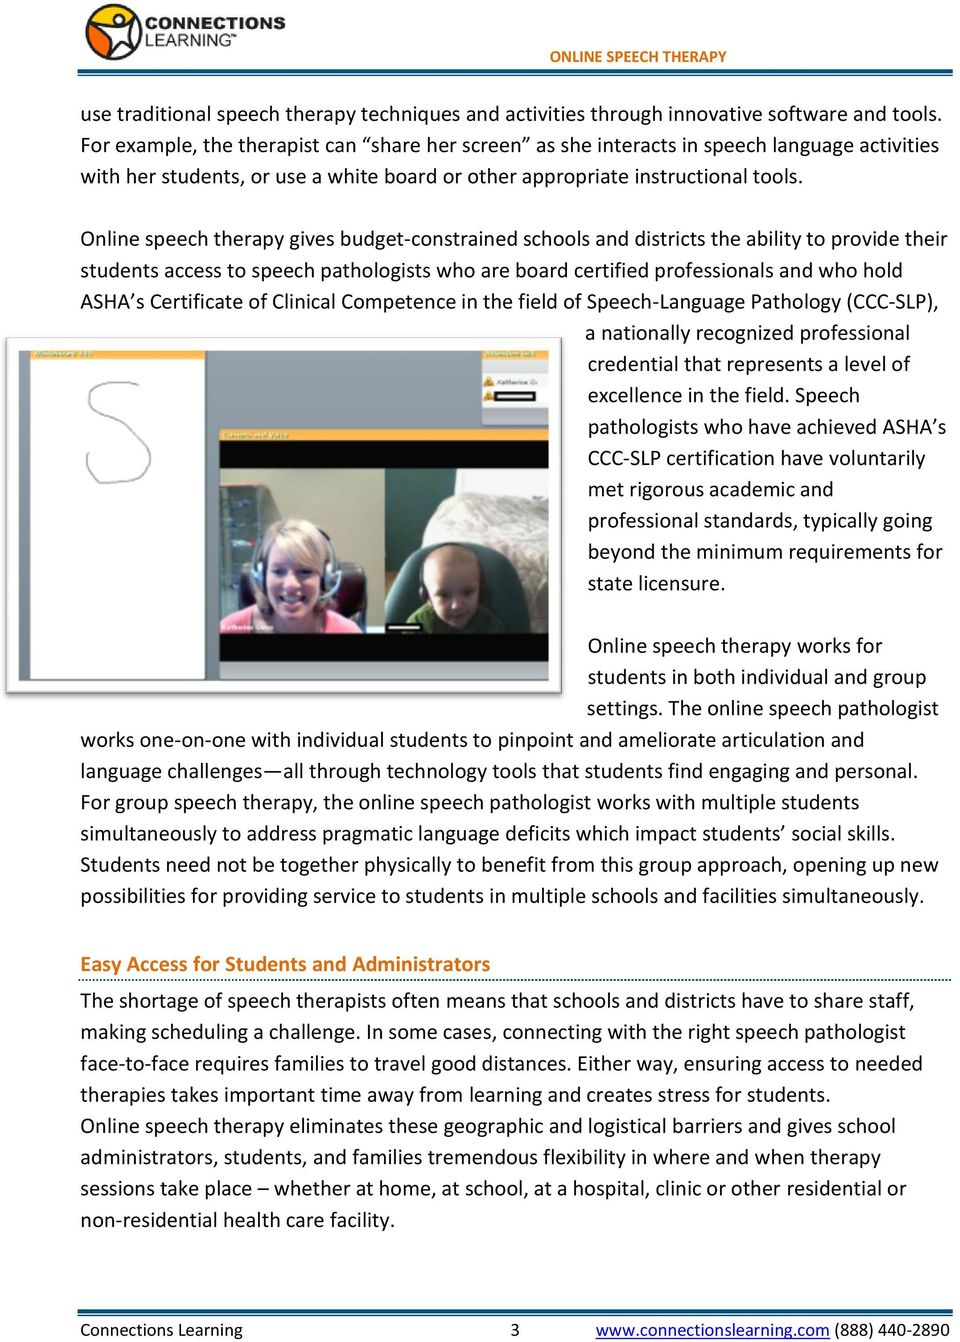 Online speech therapy gives budget-constrained schools and districts the ability to provide their students access to speech pathologists who are board certified professionals and who hold ASHA s